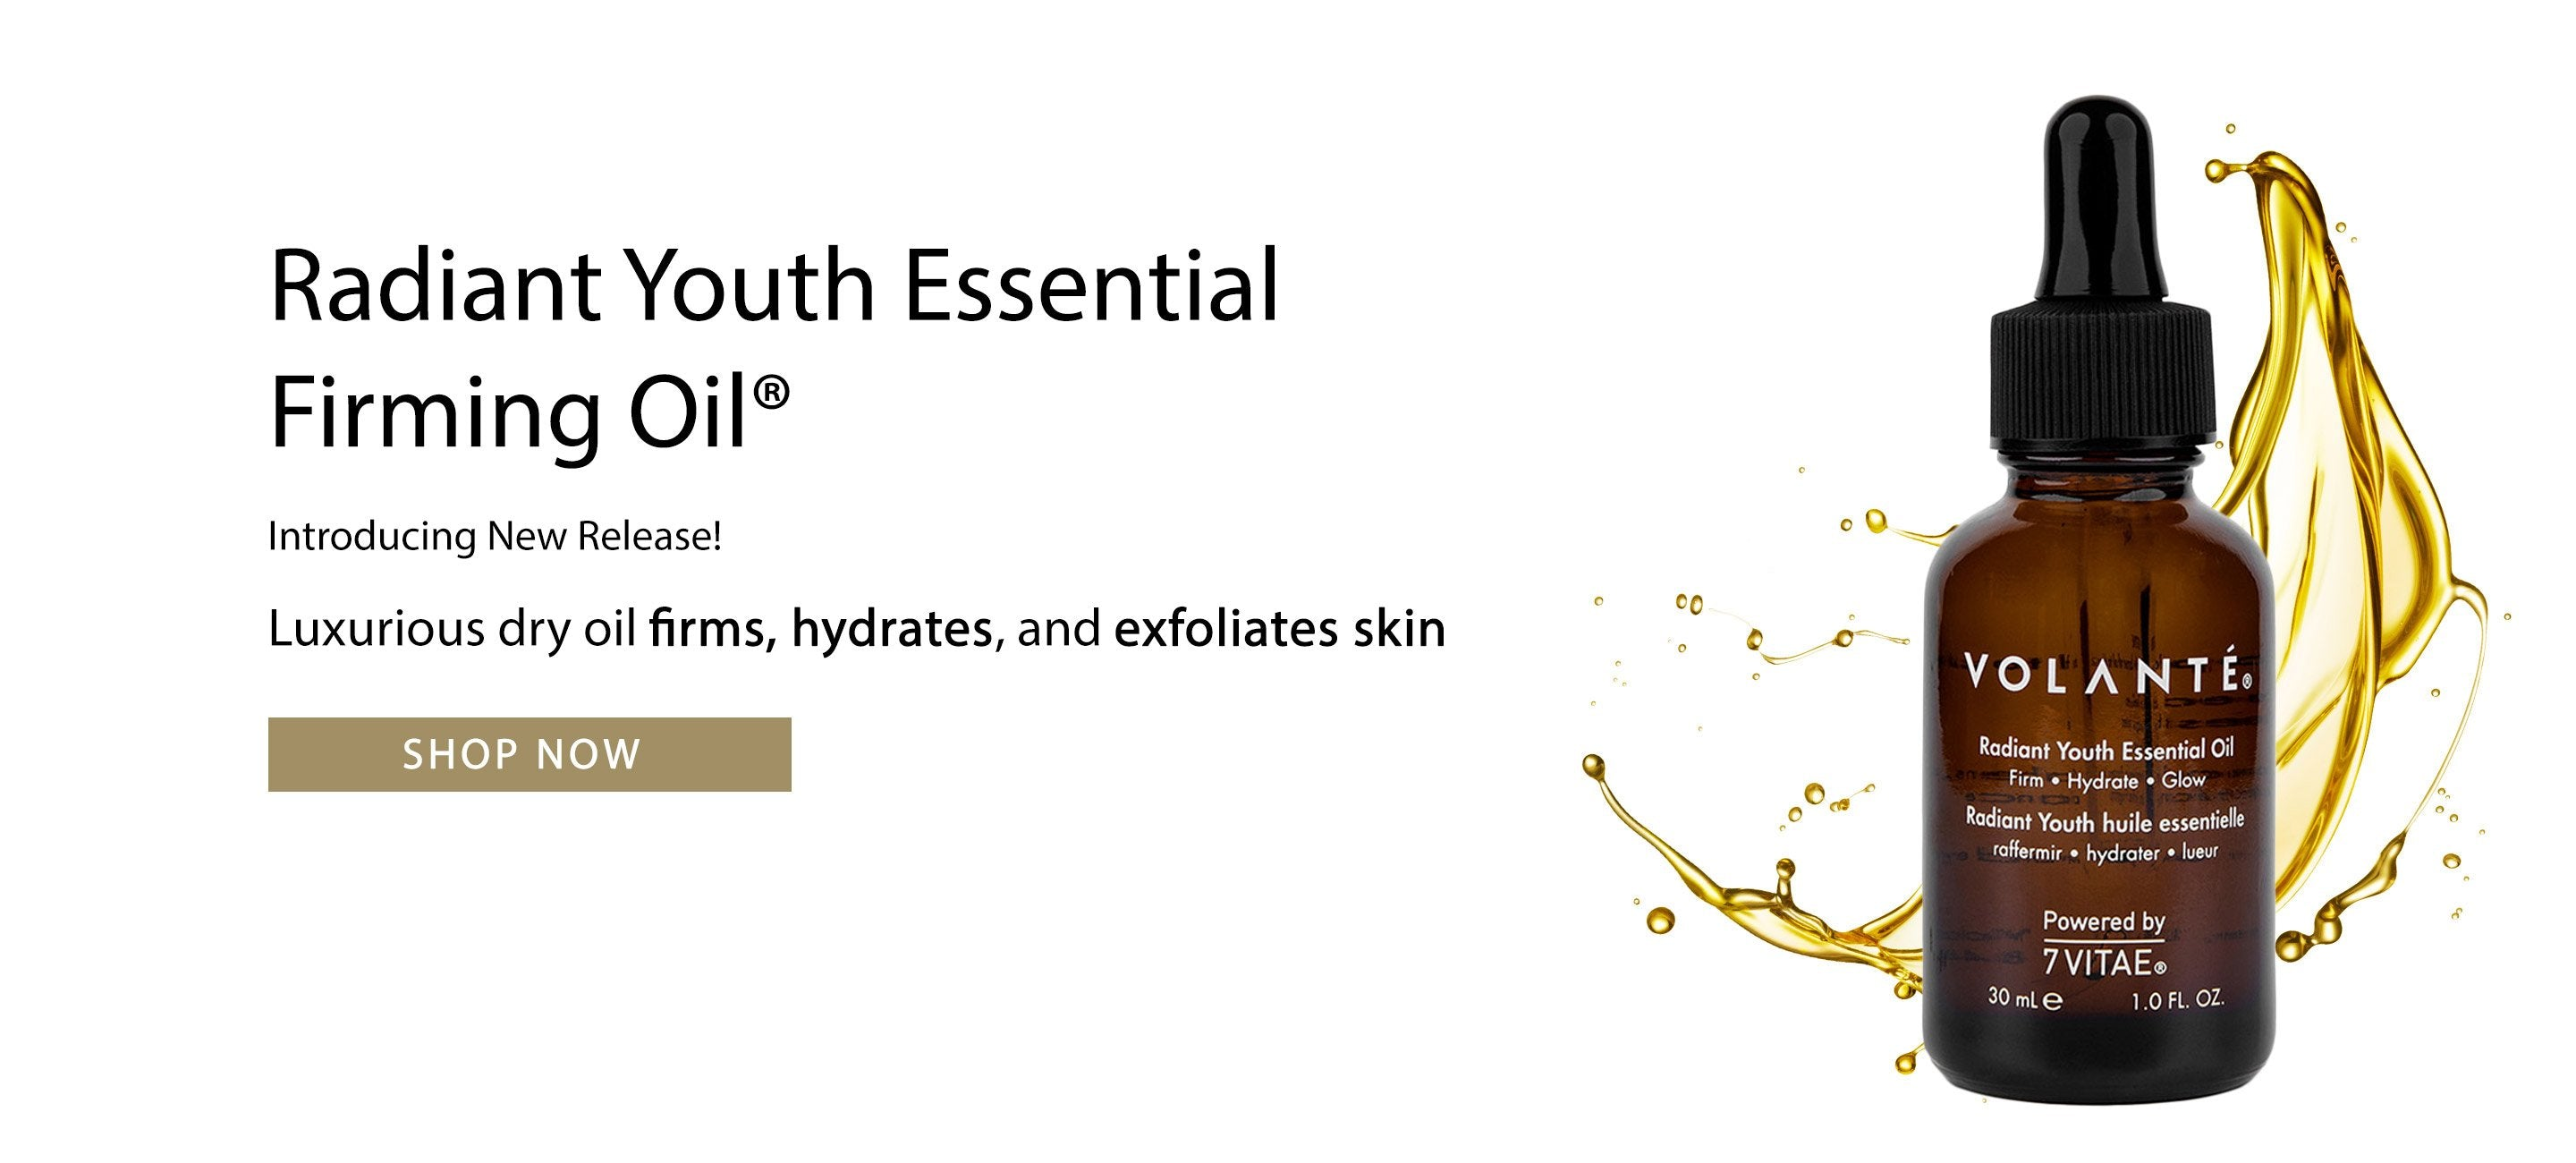 Radiant Youth Essential Firming Oil